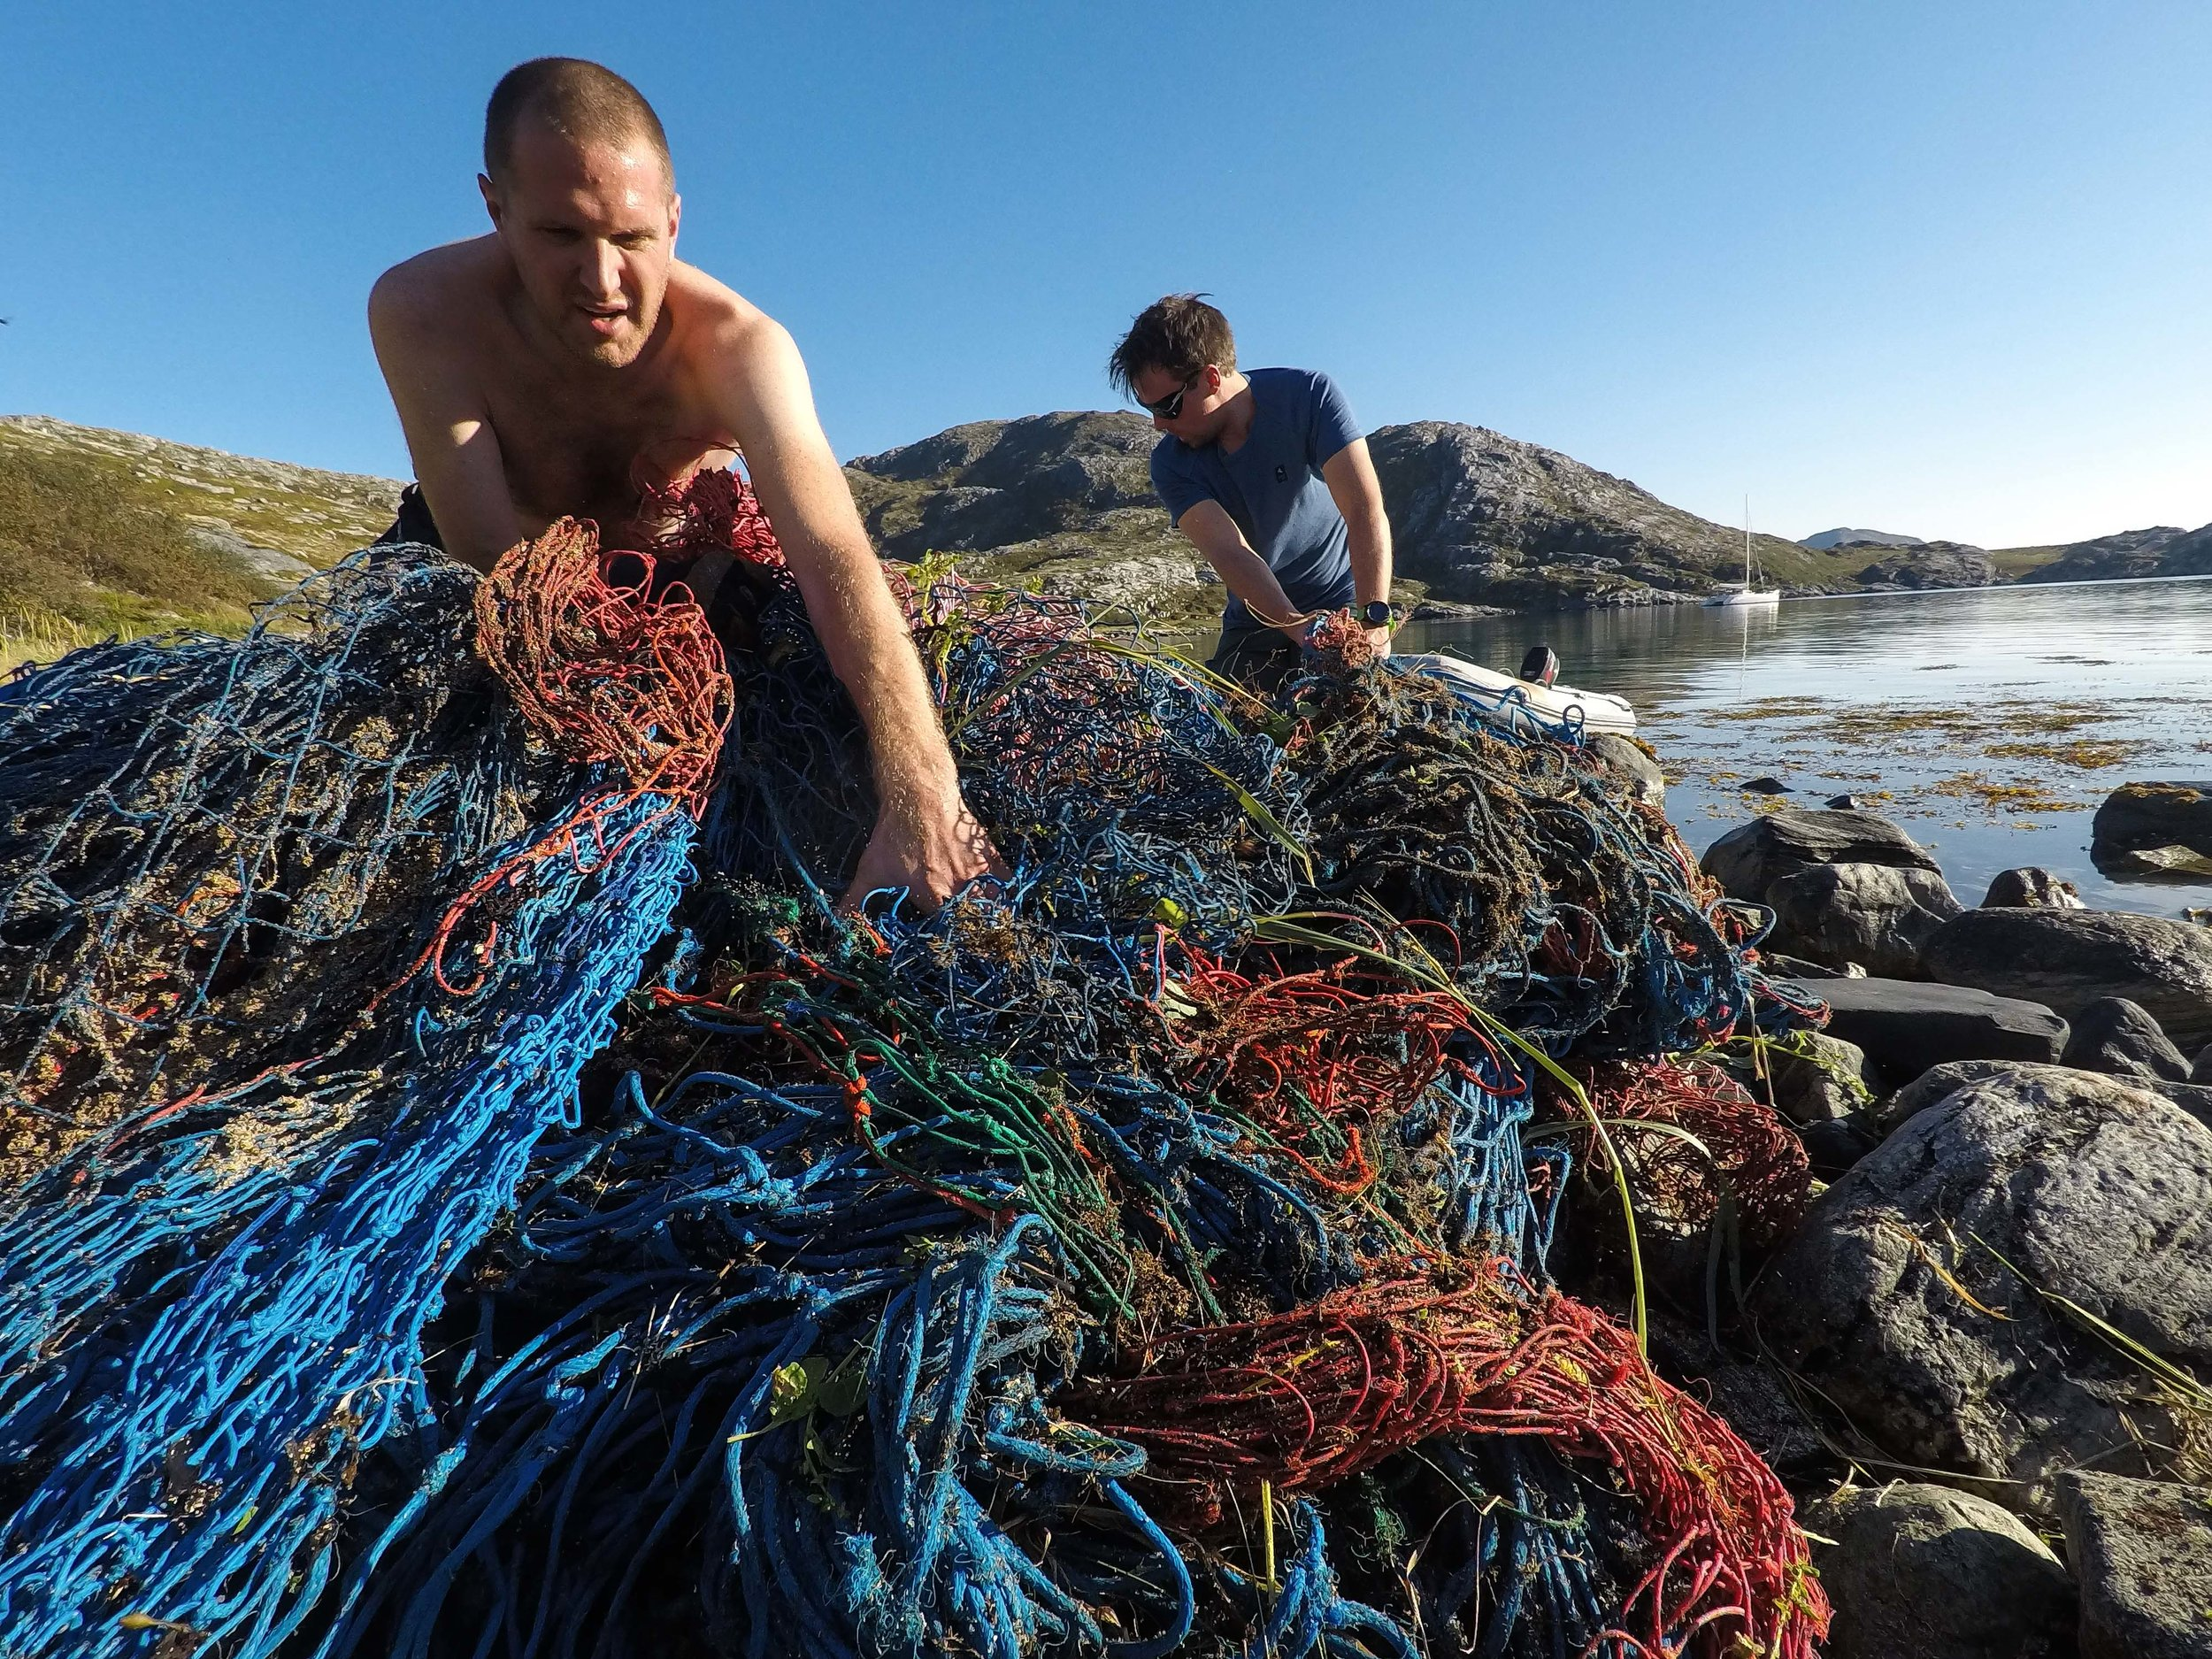 Volunteers Brieuc and Andreas working hard to clean up a 200 kg plastic fishing net from the marine environment. Photographer: Jonas Legernes